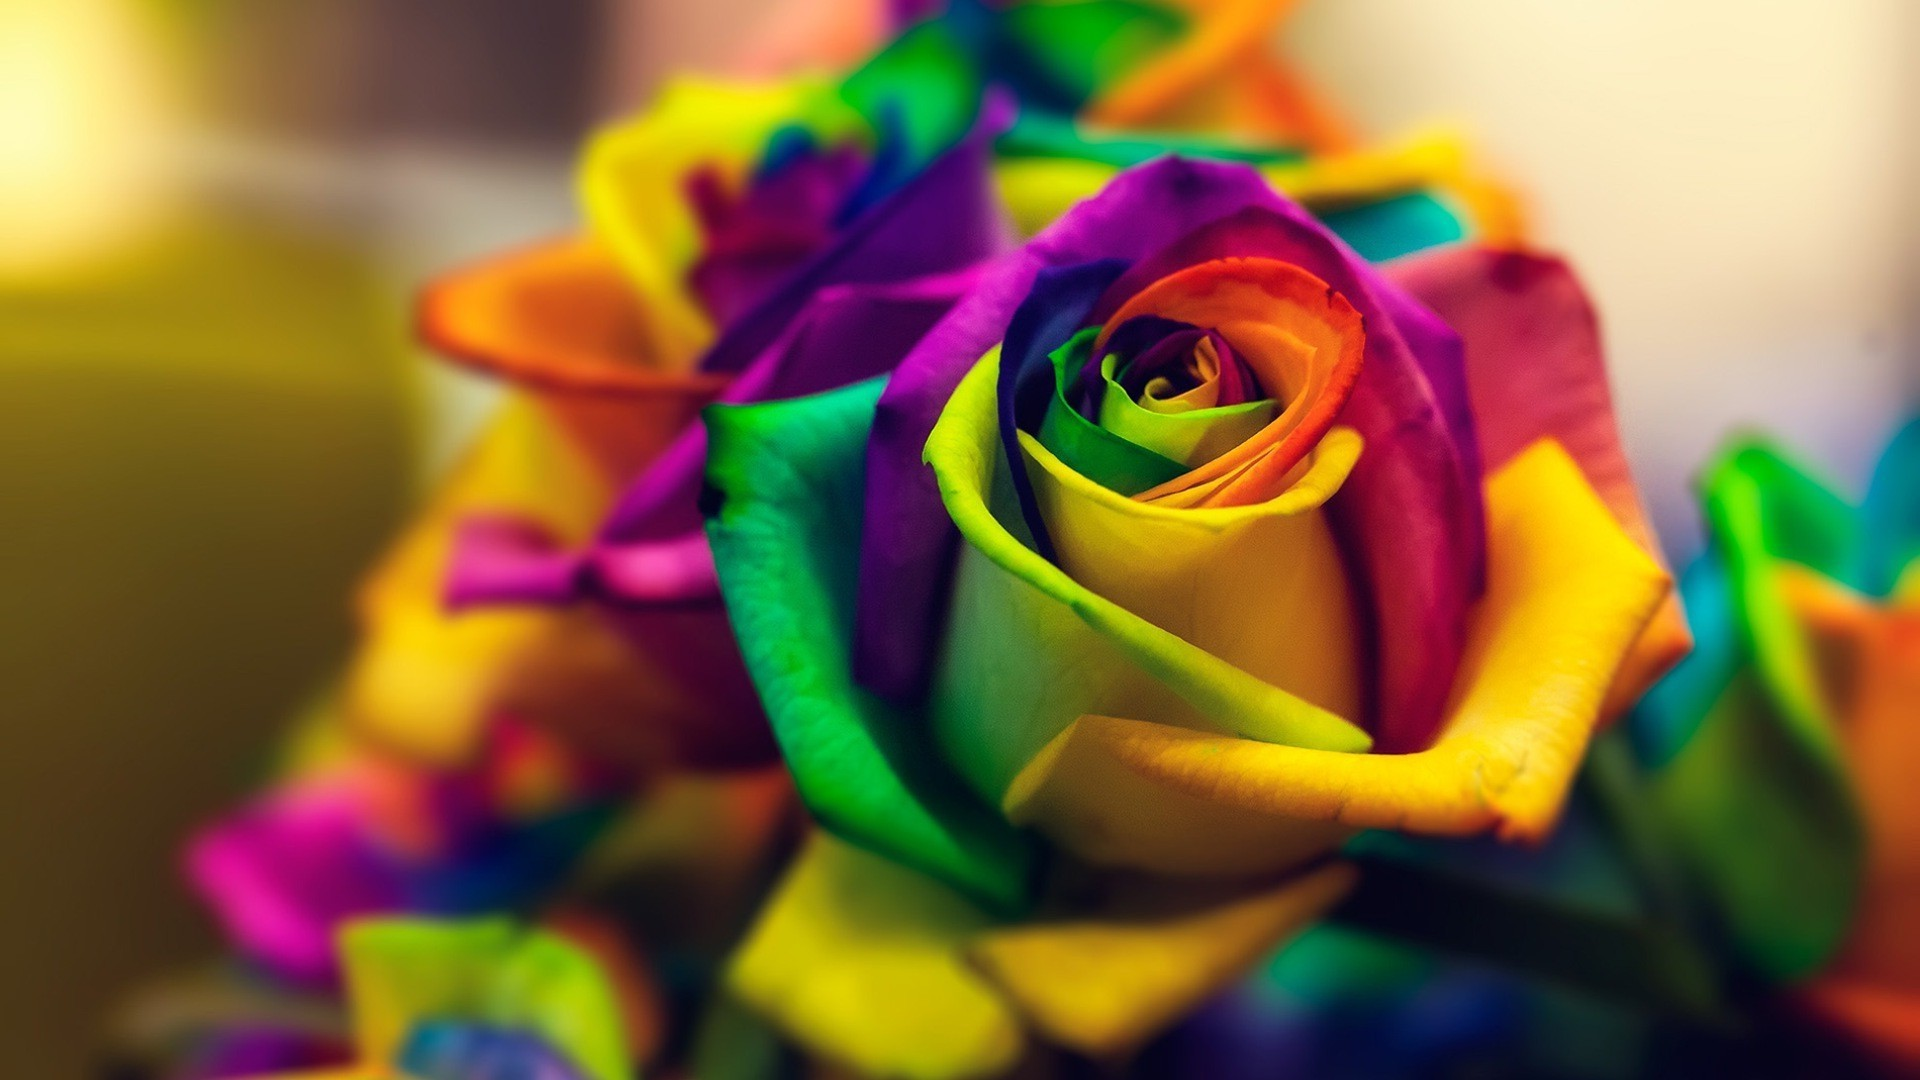 flowers, Closeup, Macro, Colorful, Rose Wallpapers HD / Desktop and Mobile  Backgrounds